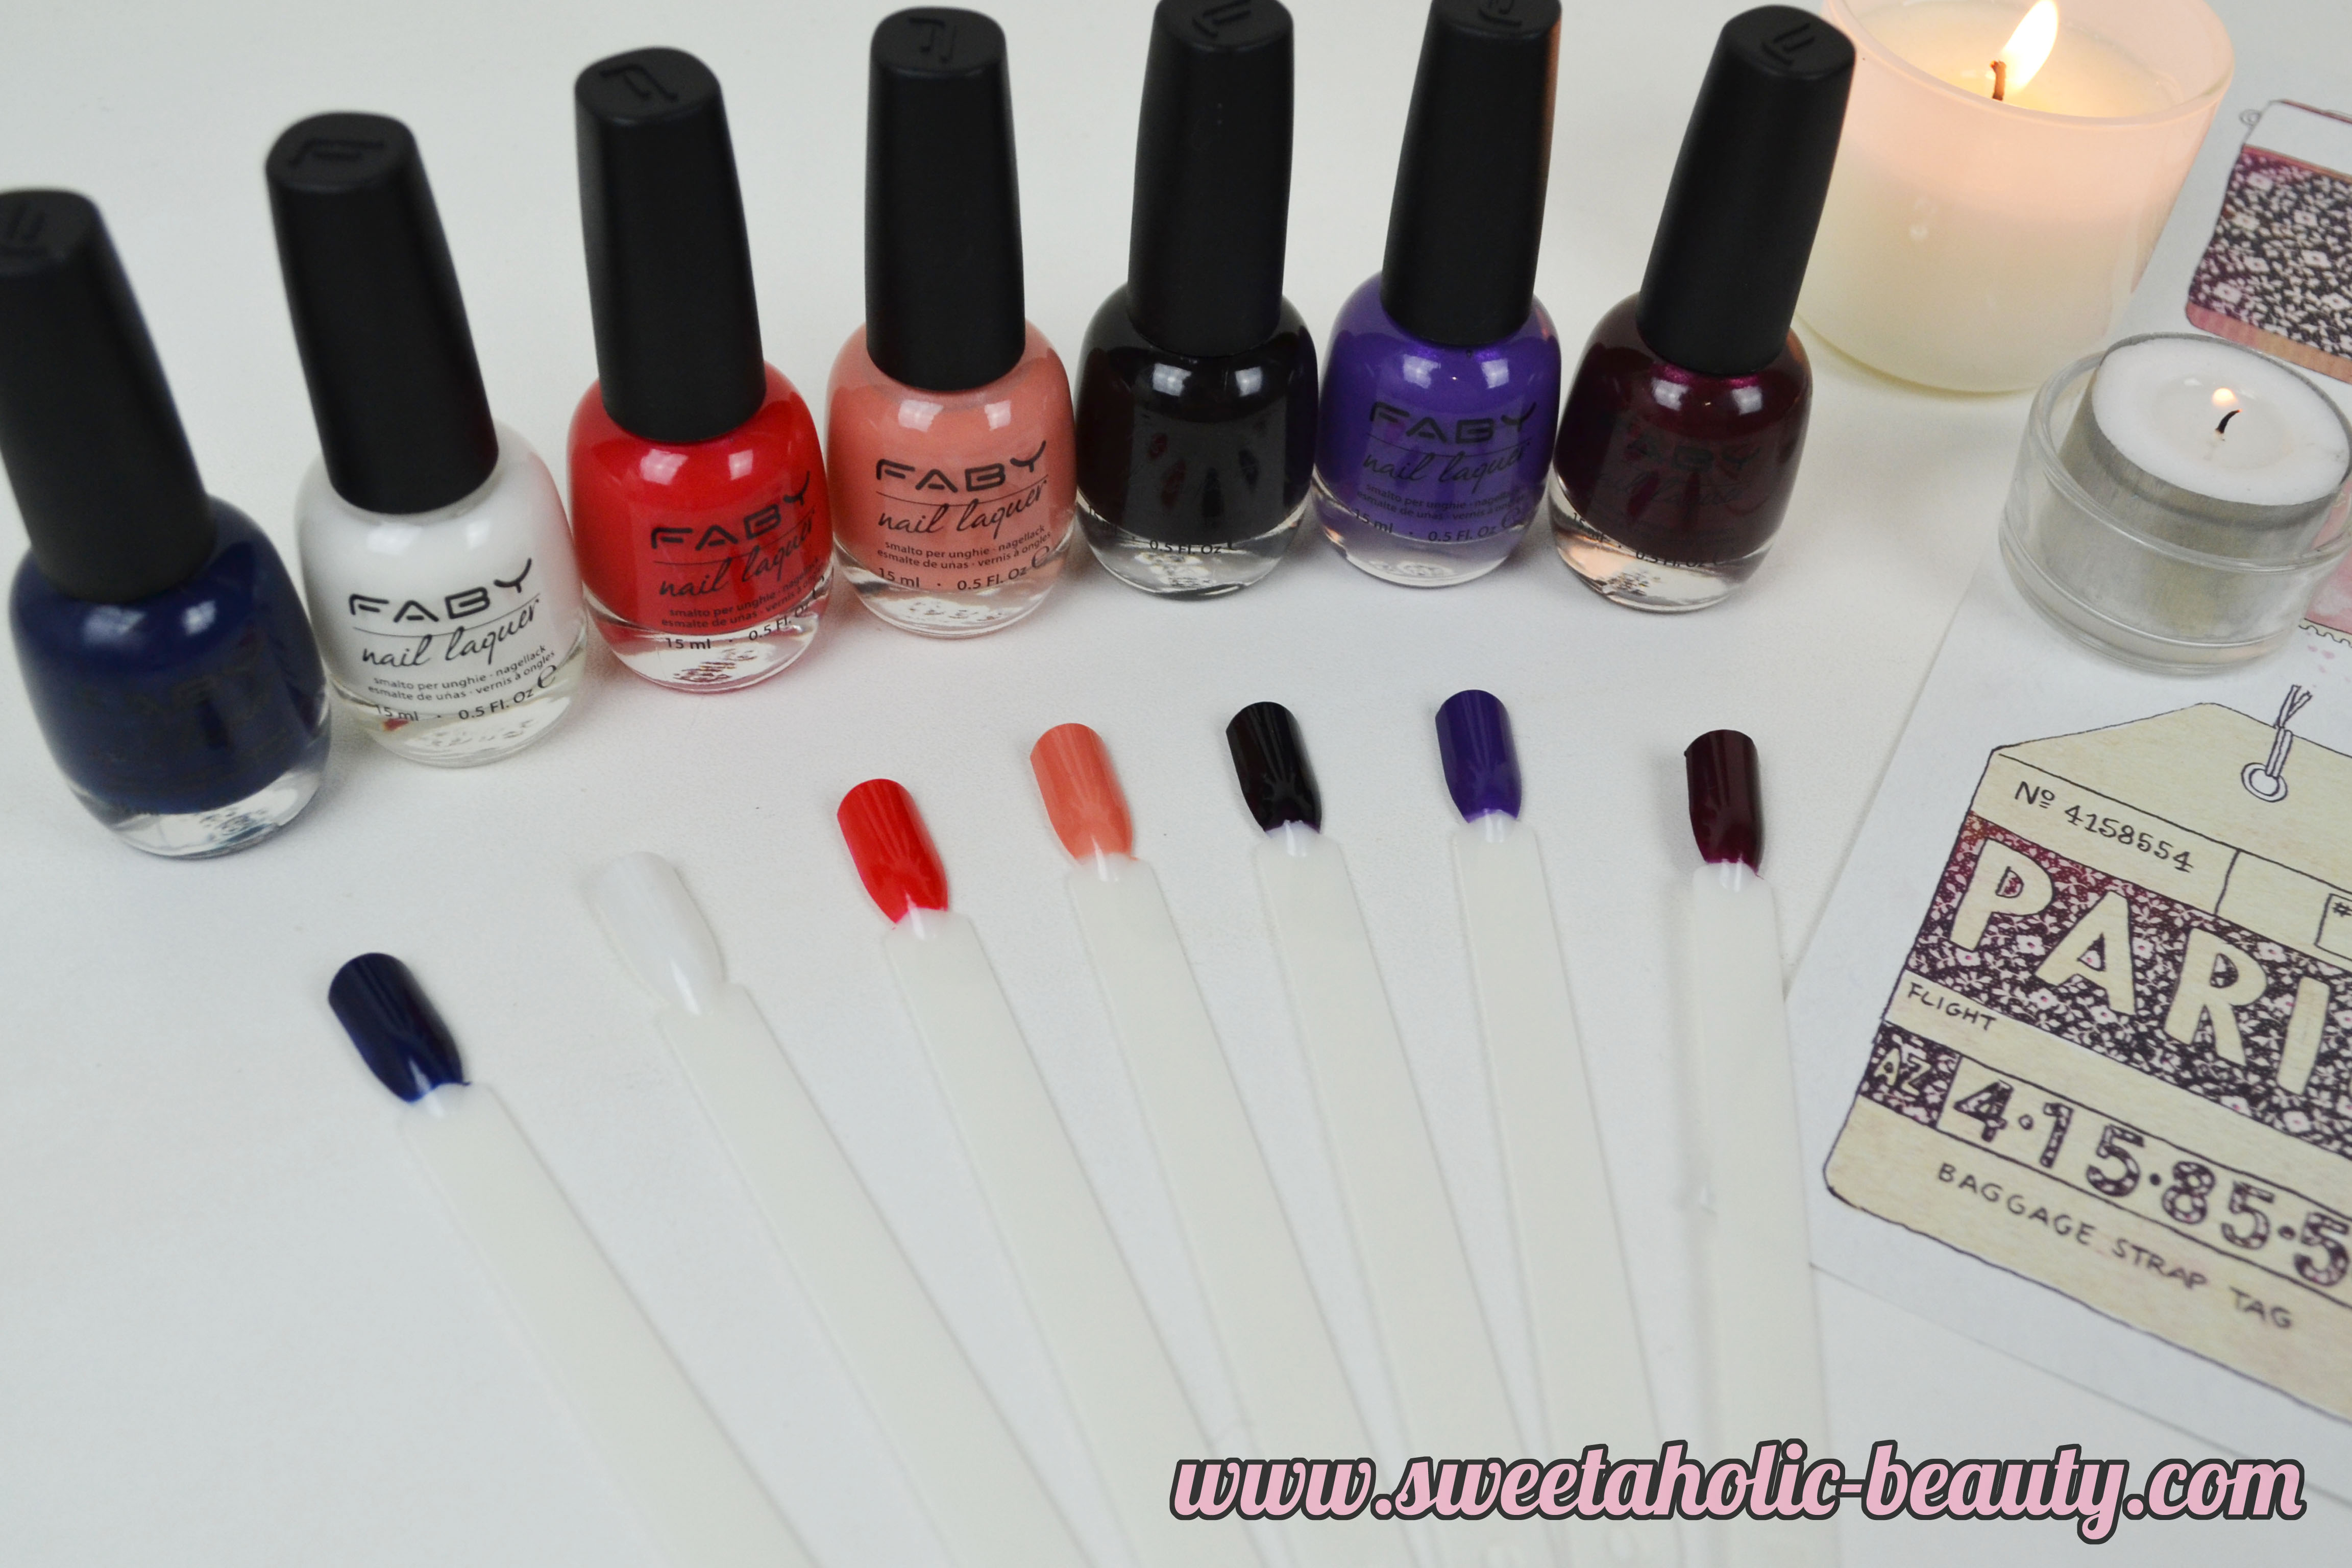 Faby Nails Vive La France Collection Review & Swatches - Sweetaholic Beauty